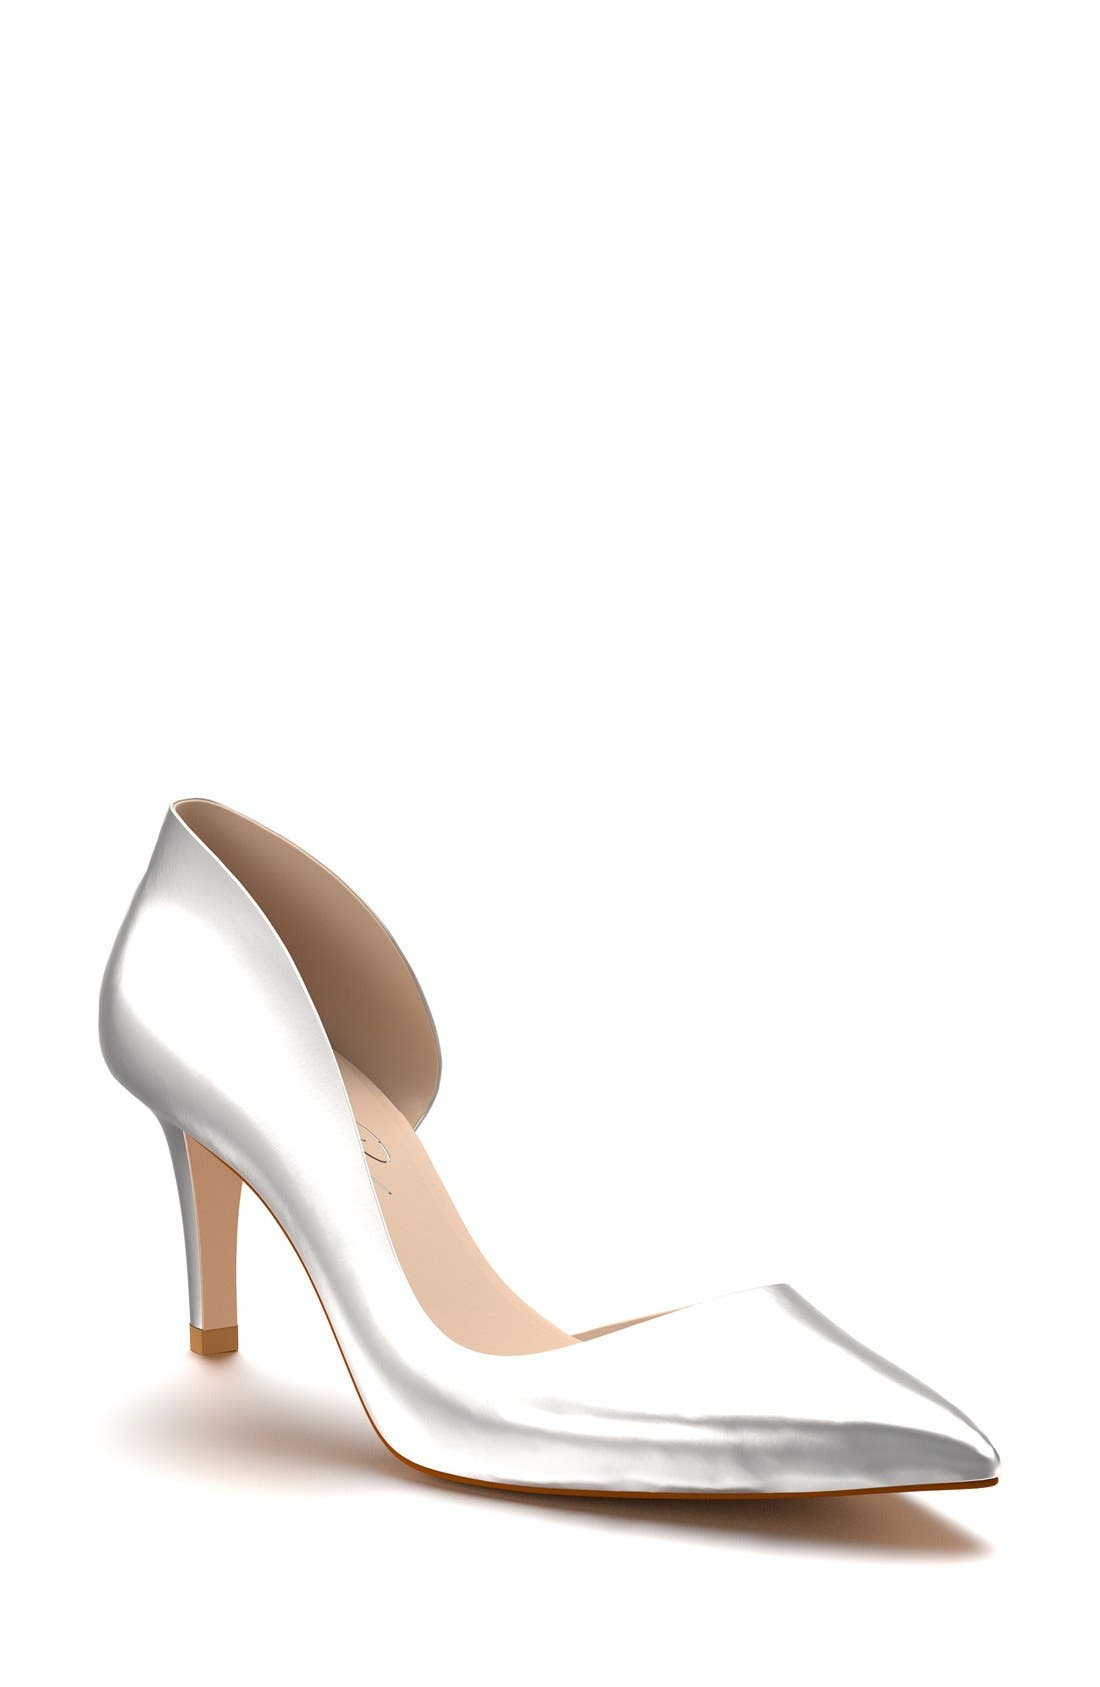 Main Image - Shoes of Prey Half d'Orsay Pump (Women)